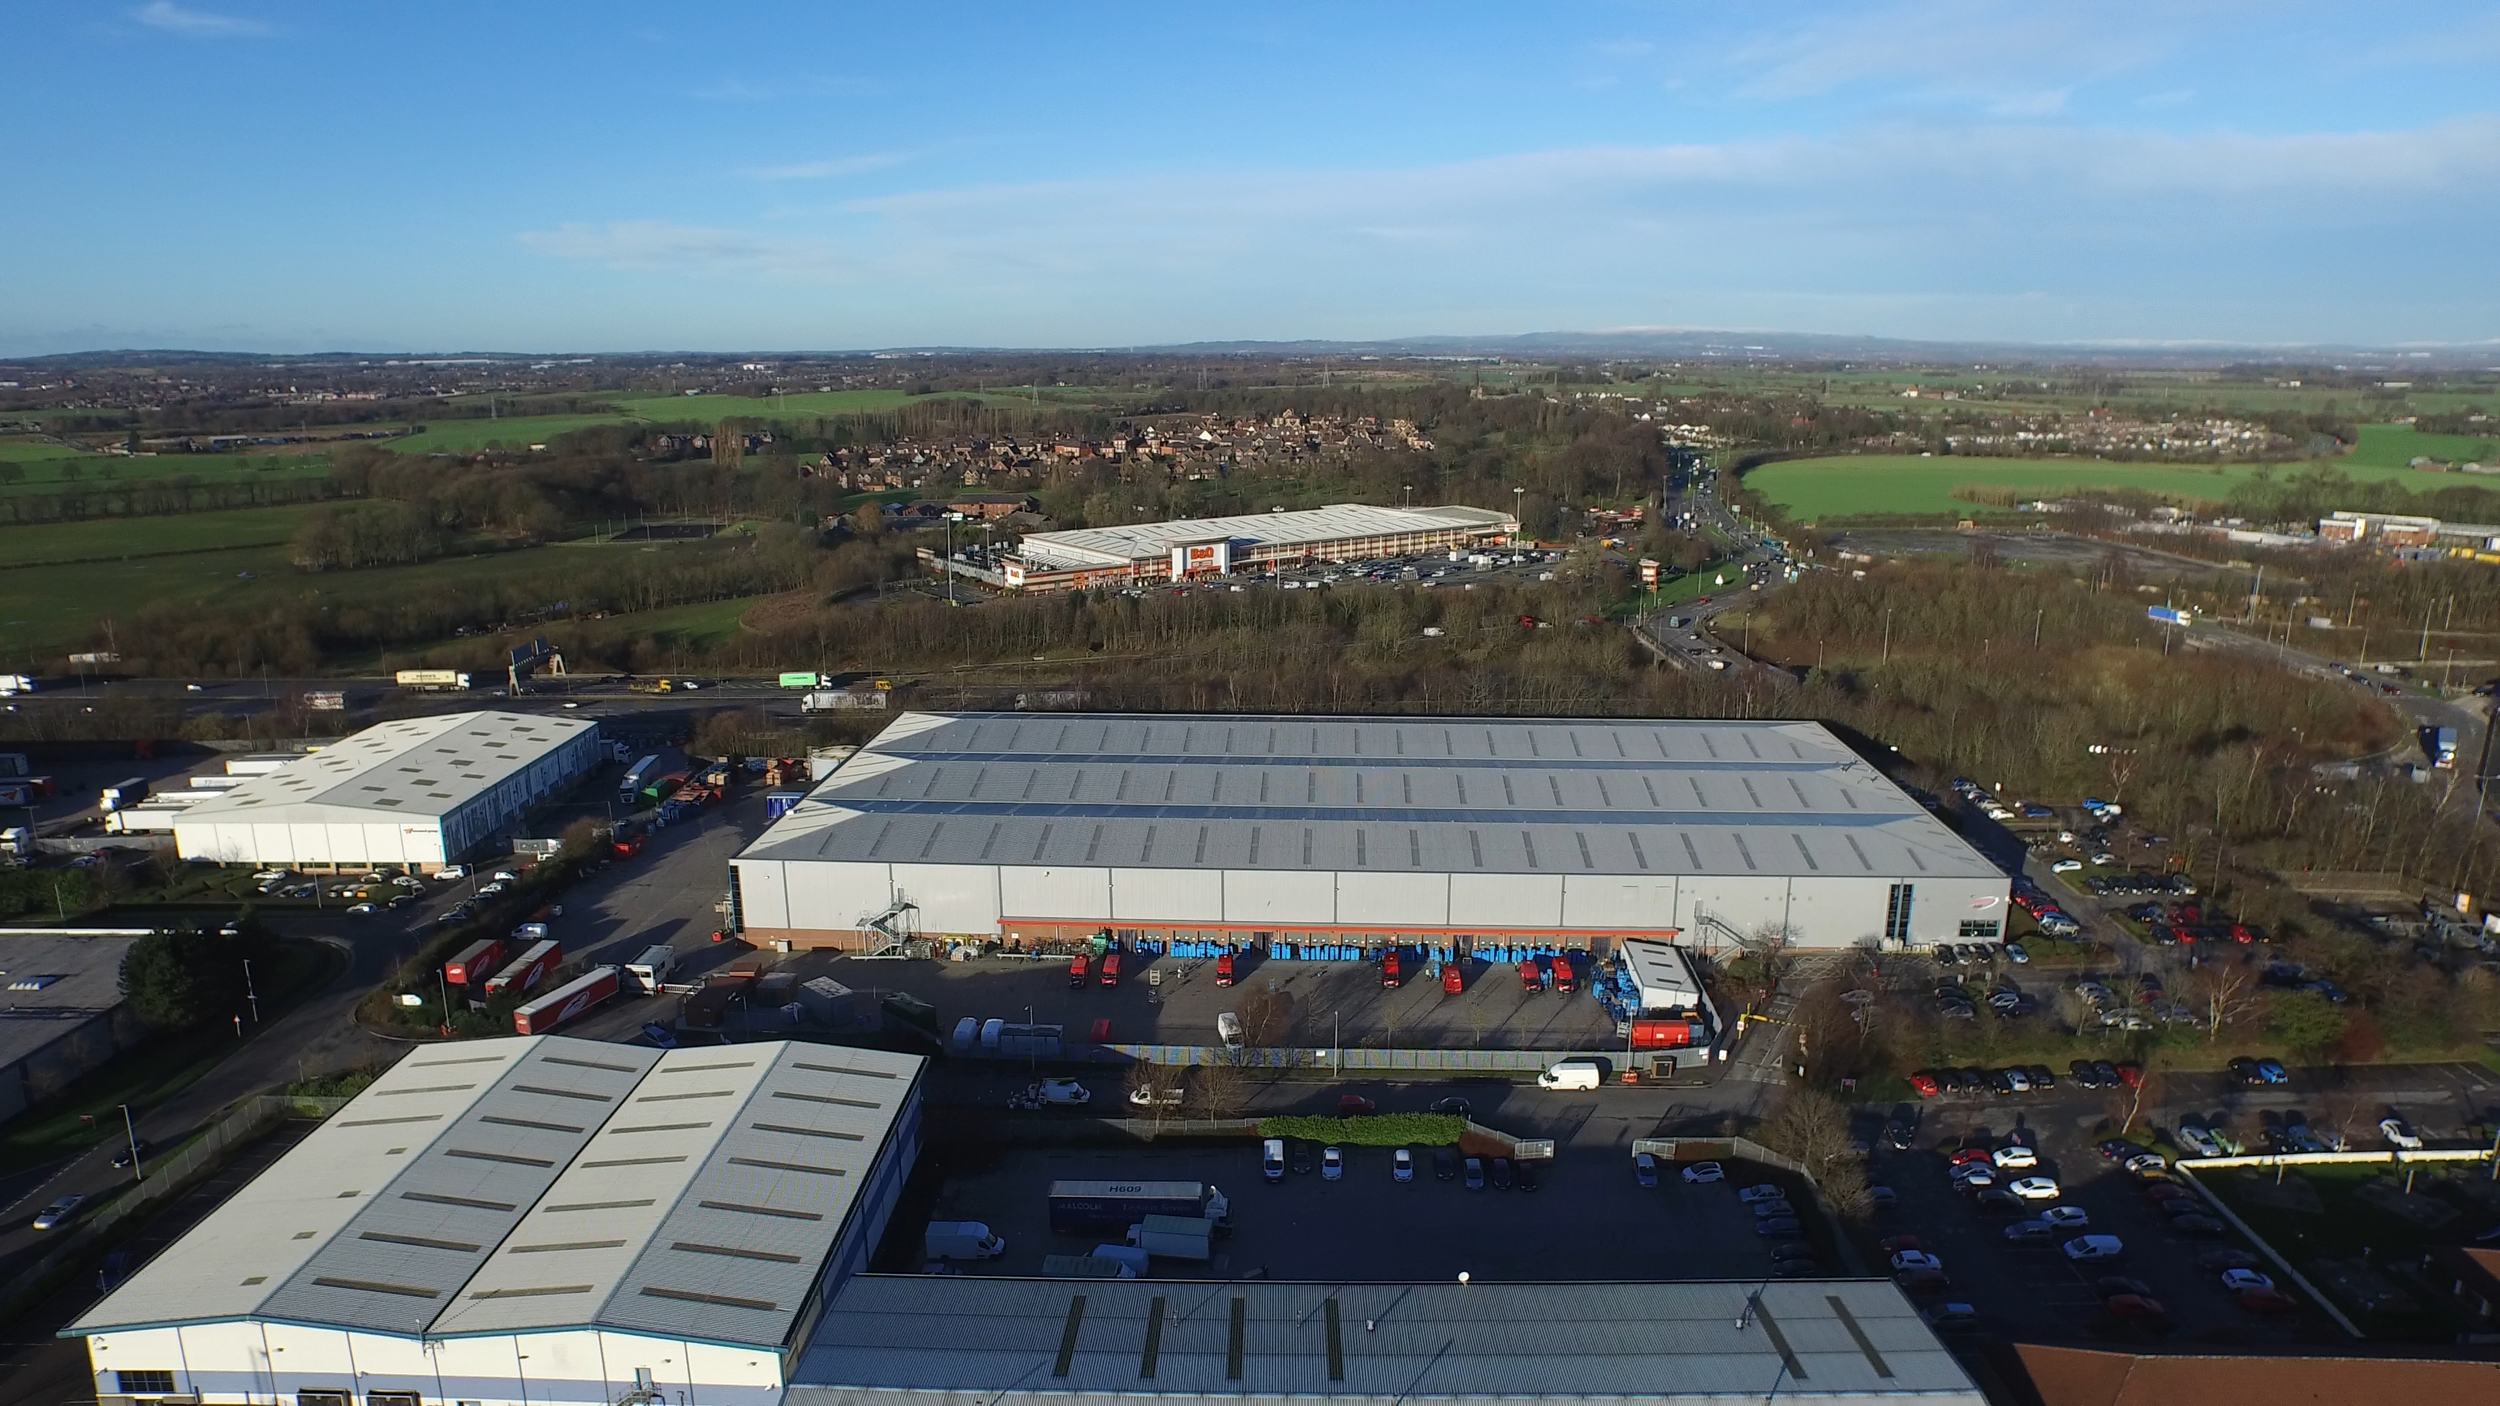 INDUSTRIAL - INVESTMENT - SALE    AAH Pharmaceuticals - Warrington   150,498 sq ft Distribution Warehouse   Client:  Columbia Threadneedle   Purchaser:  Aberdeen Asset Management   Price:  Confidential   WATCH DRONE VIDEO